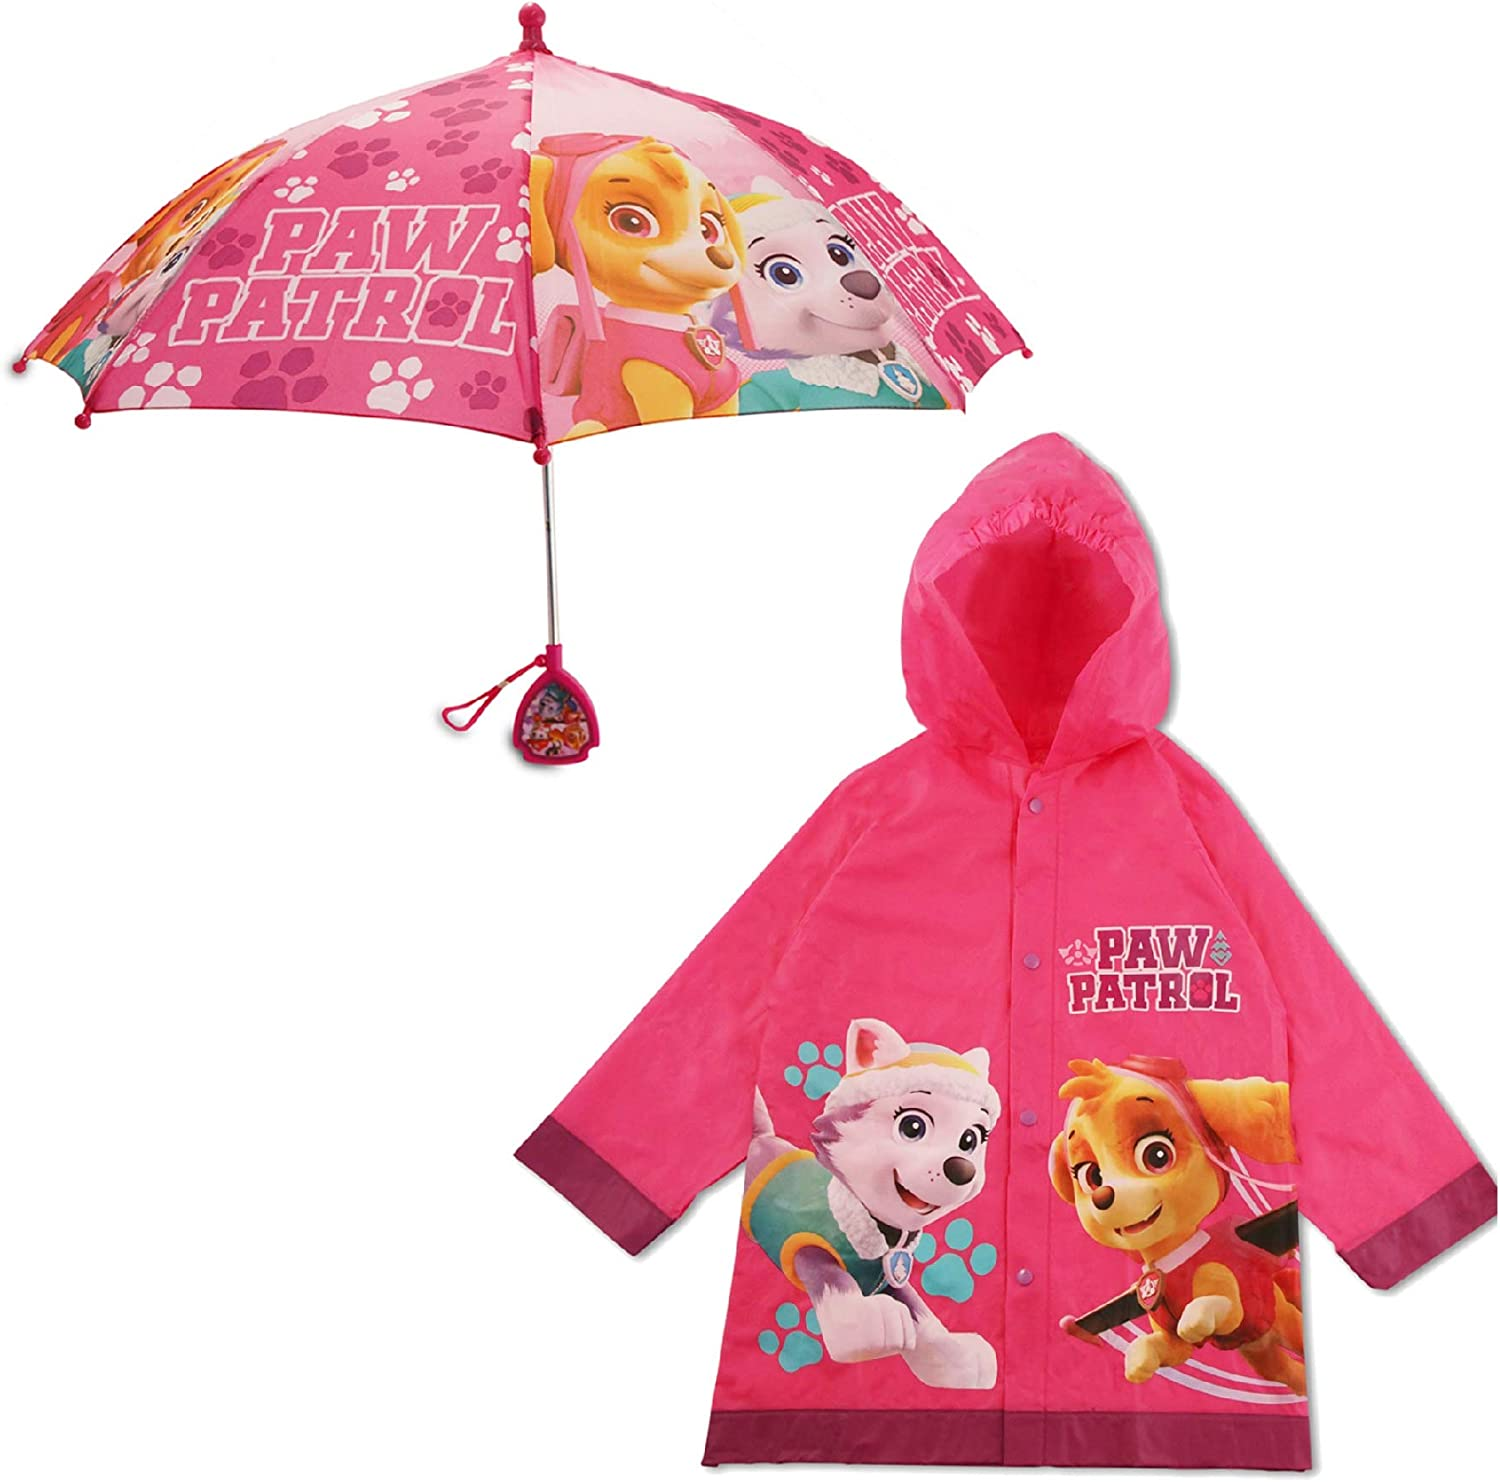 Nickelodeon Kids Umbrella and Slicker, Paw Patrol Toddler and Little Girl Rain Wear Set, for Ages 2-7